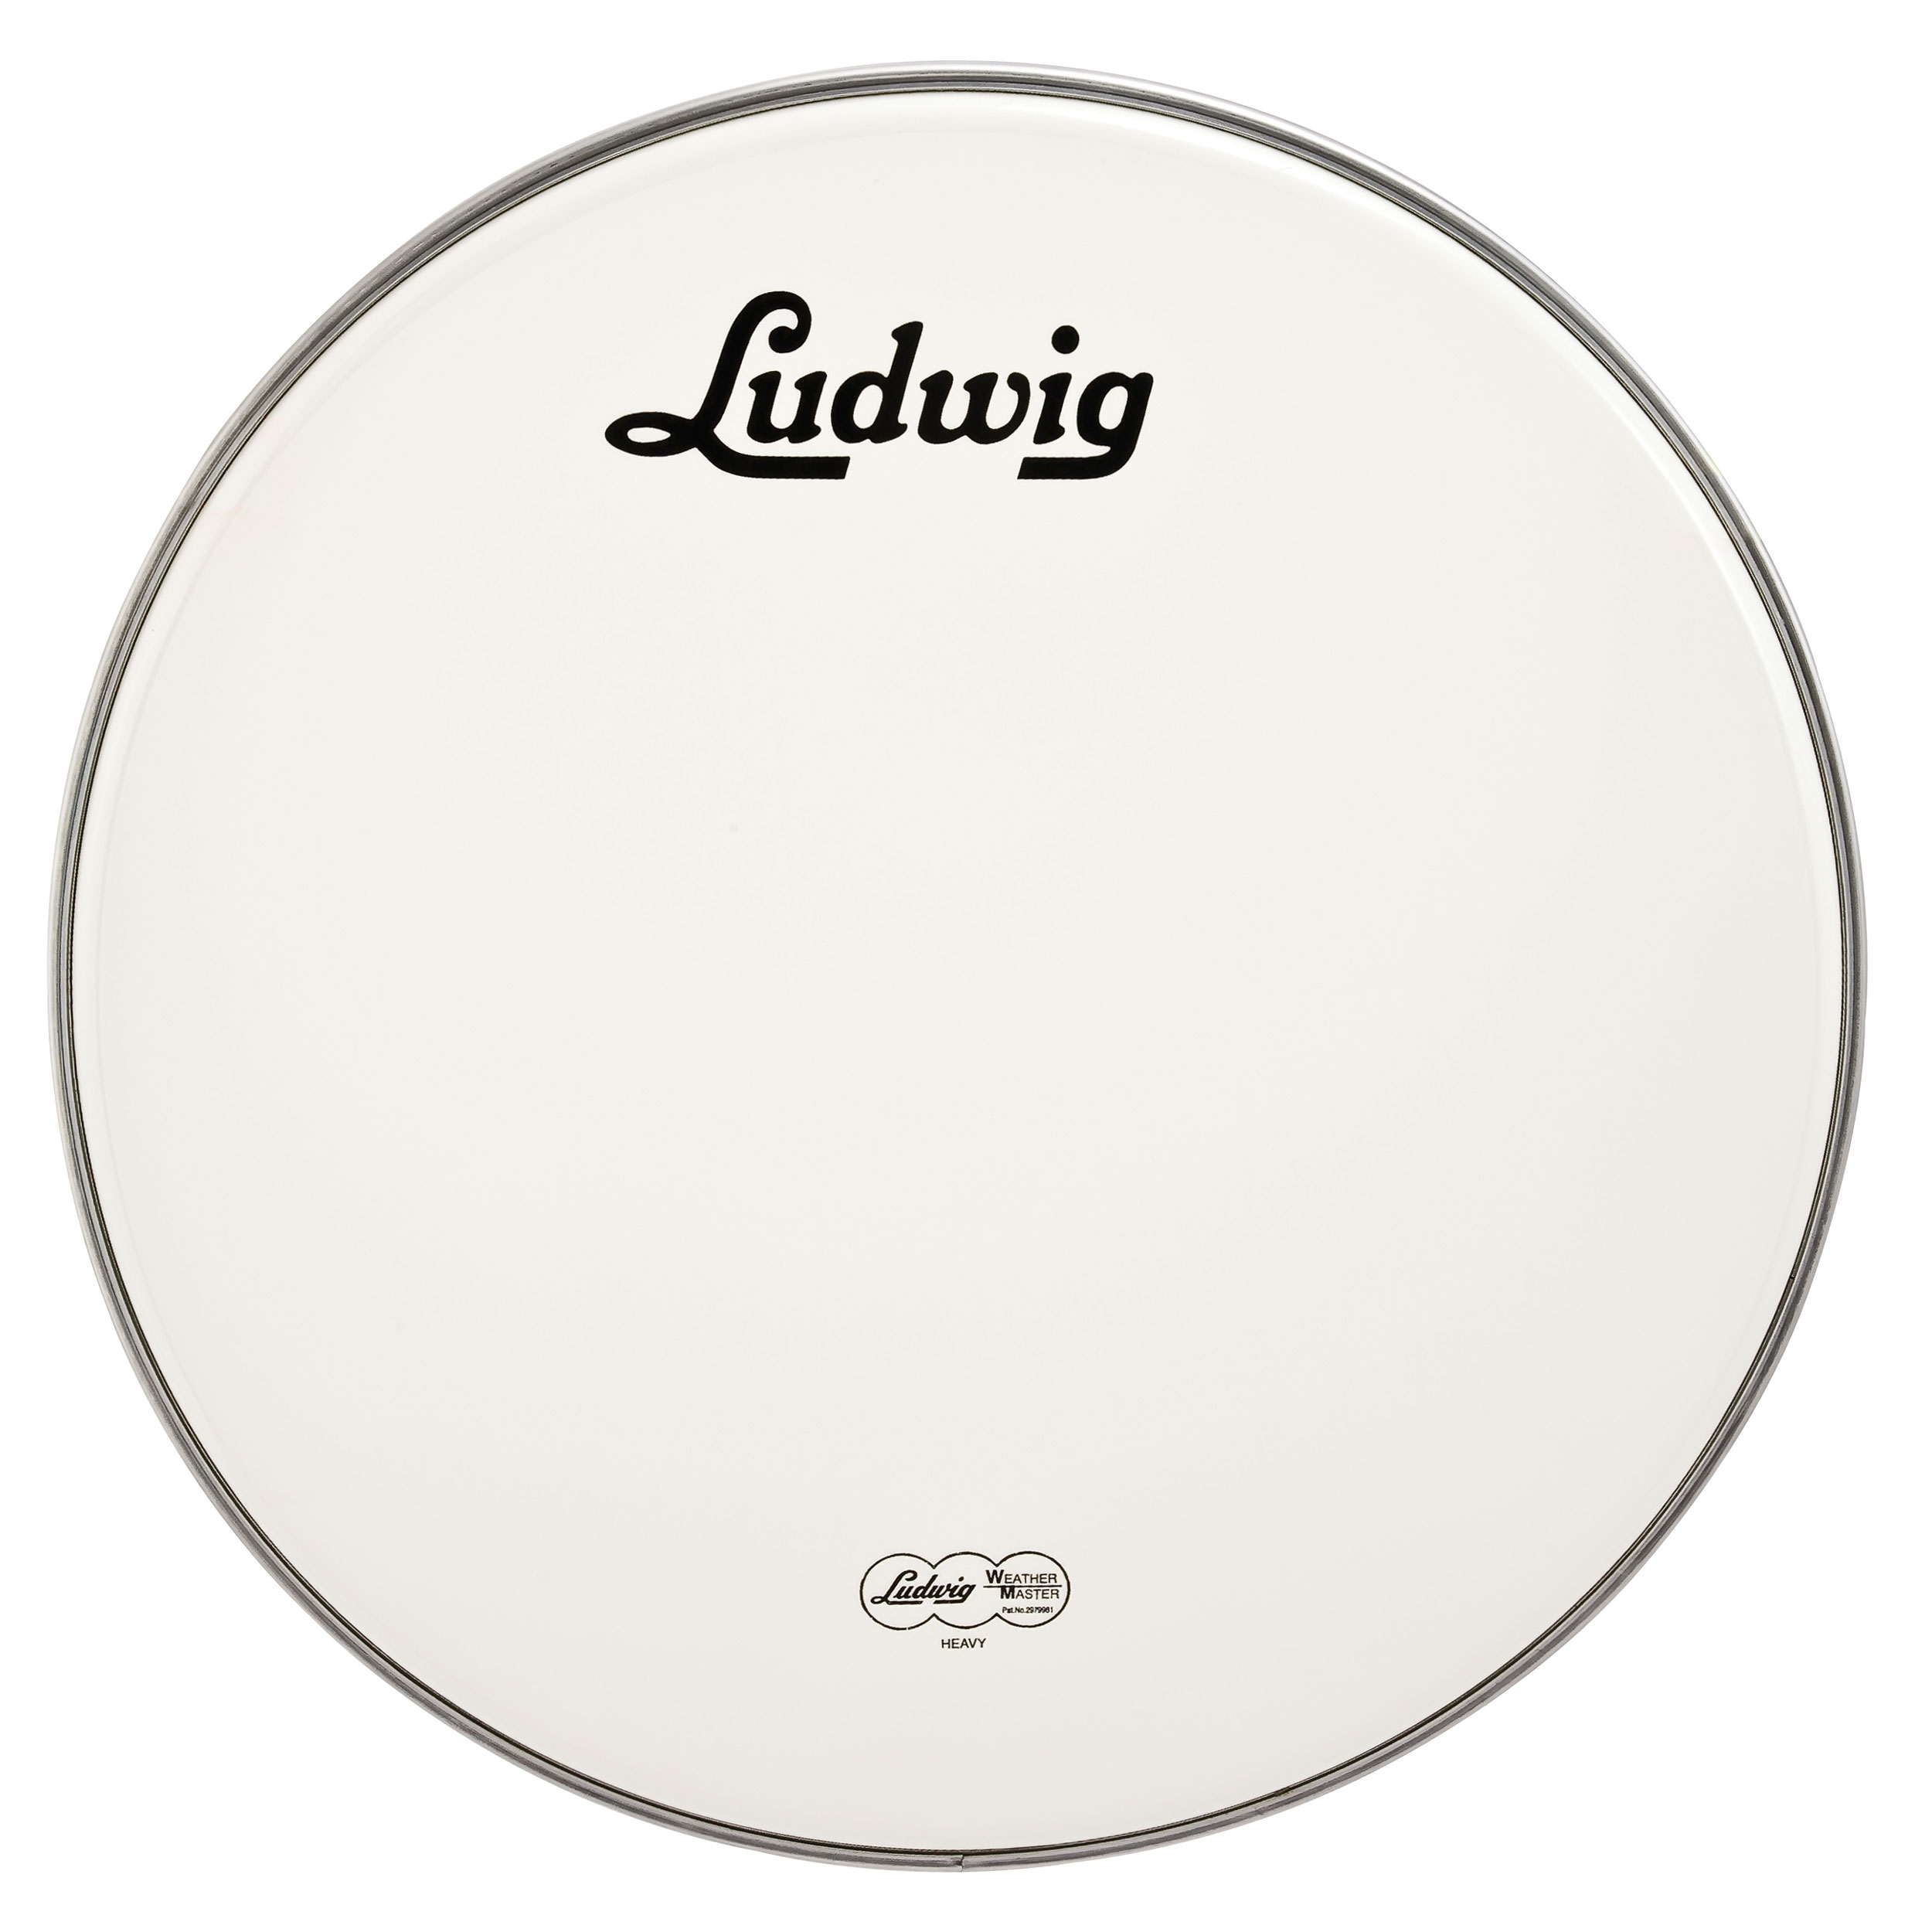 ludwig 26 vintage bass drum head lw4226v lone star percussion. Black Bedroom Furniture Sets. Home Design Ideas